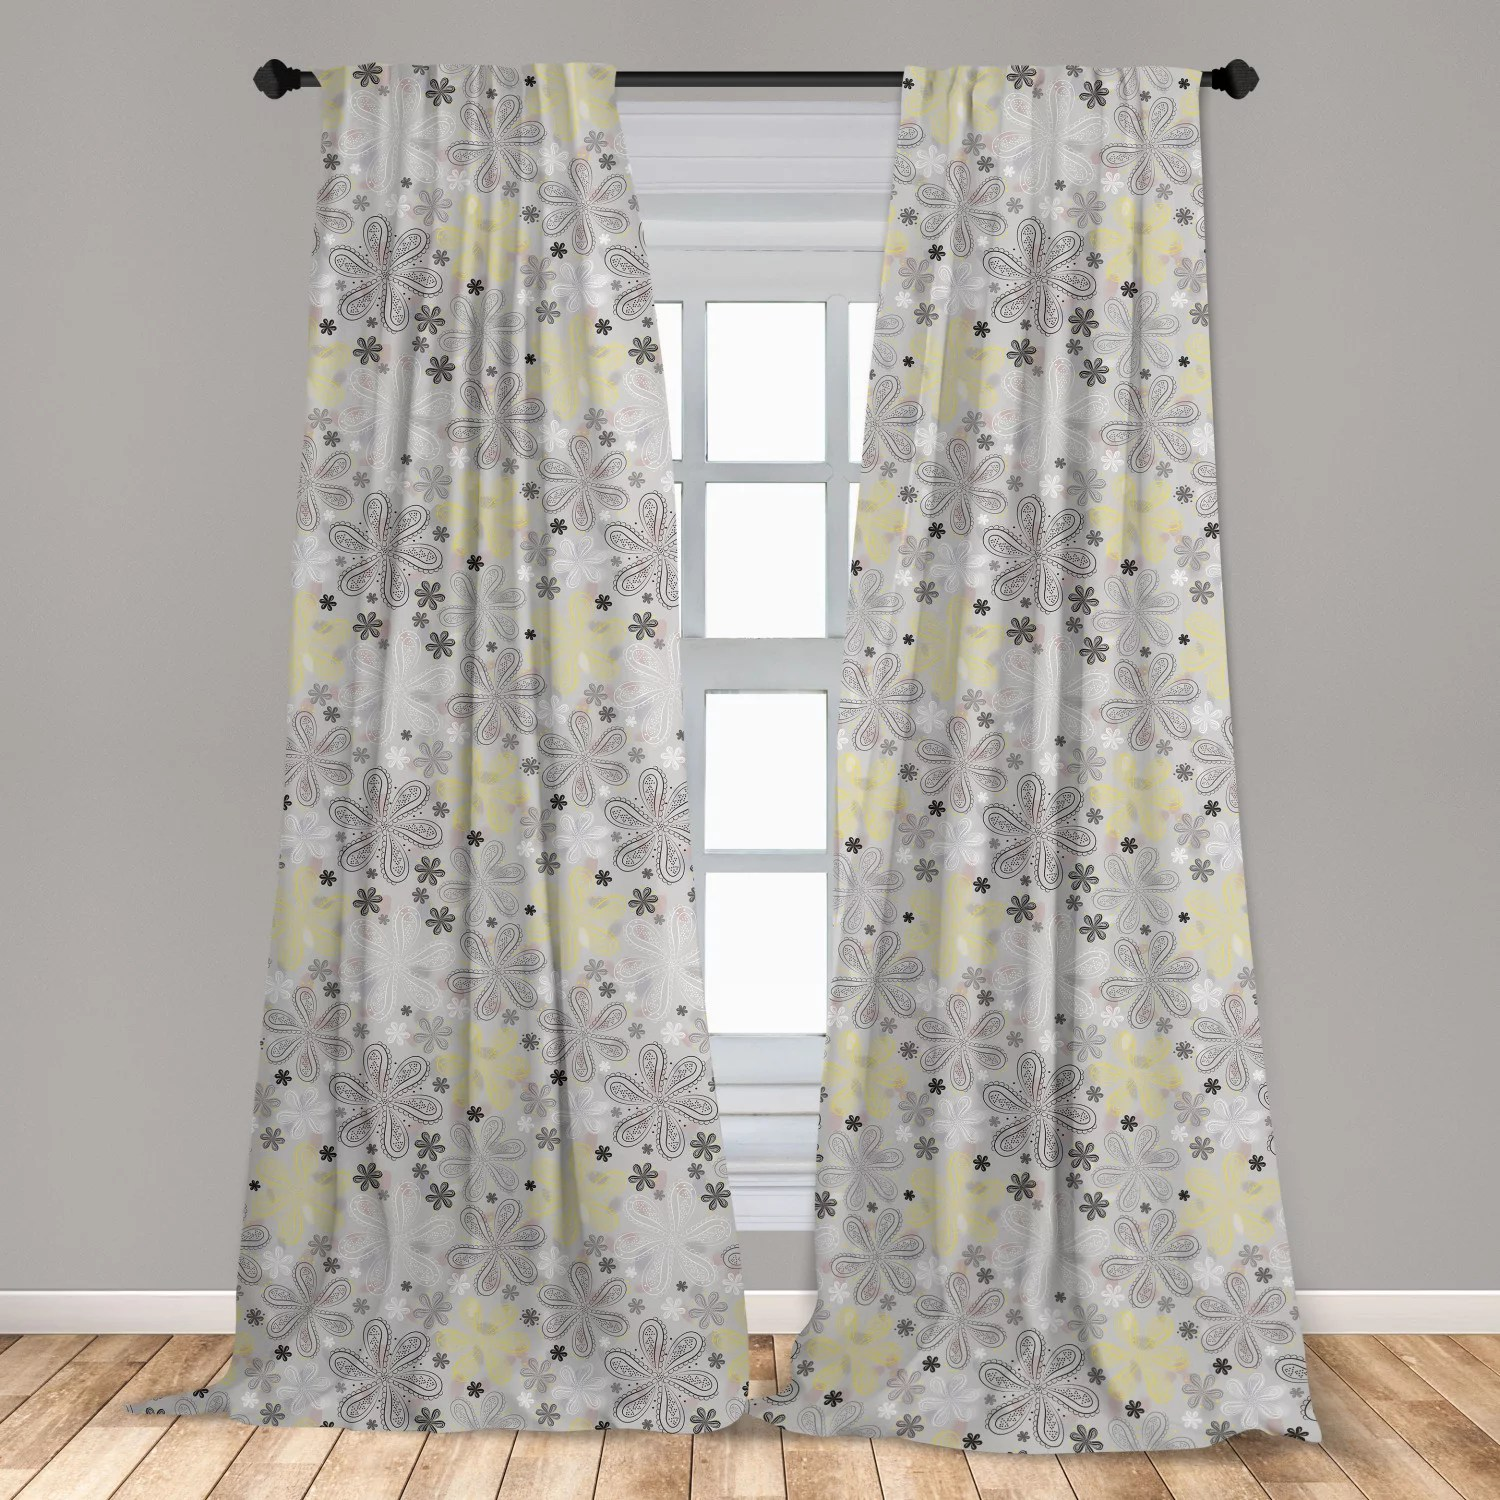 grey and yellow curtains 2 panels set bohem style paisley print flowers dots art image window drapes for living room bedroom pale grey white by